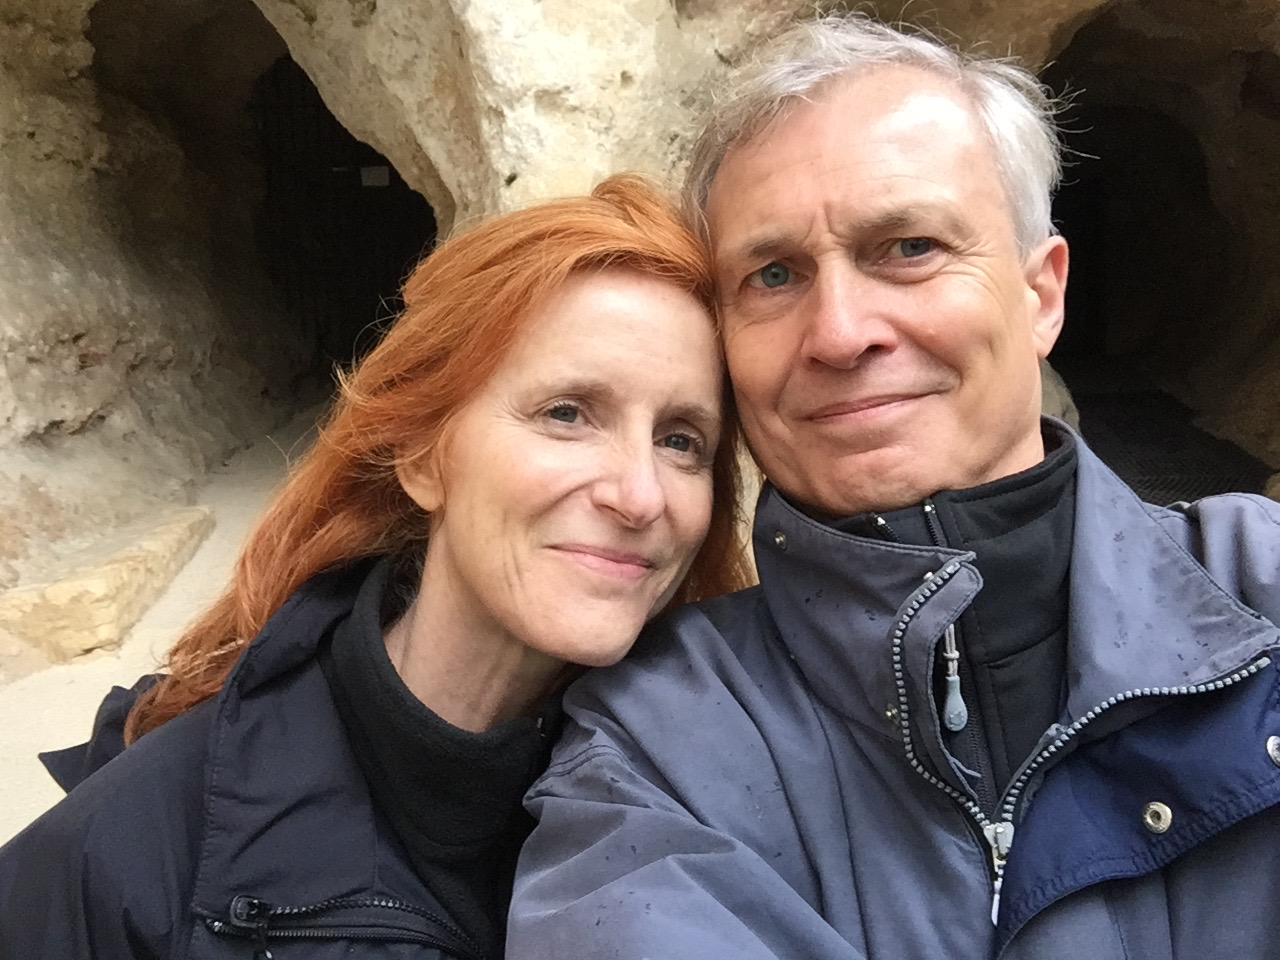 Erik and I visiting the Font de Gaume caves in France